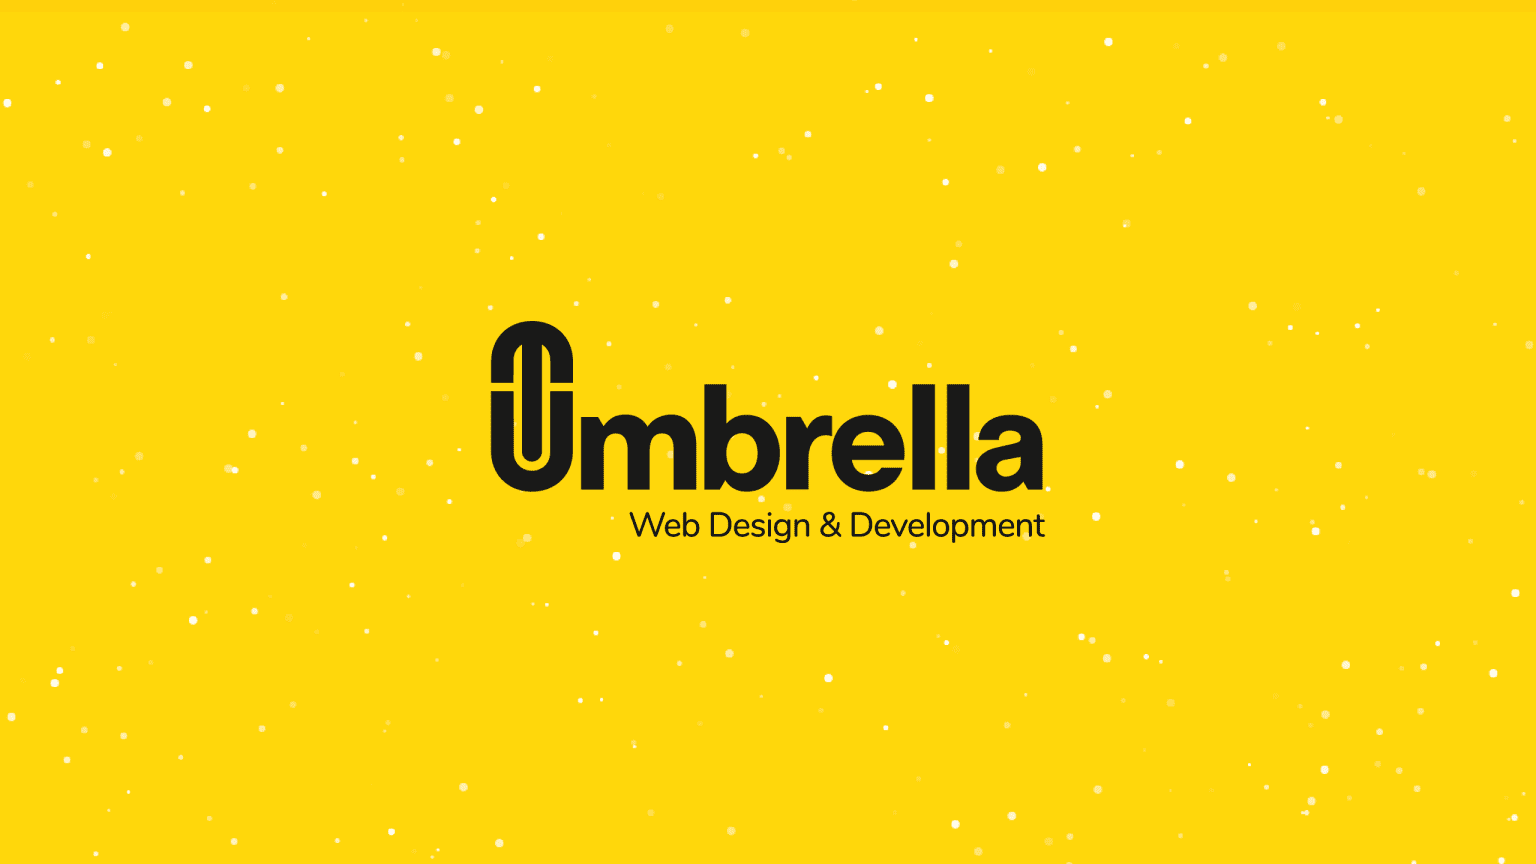 Studio Umbrella website